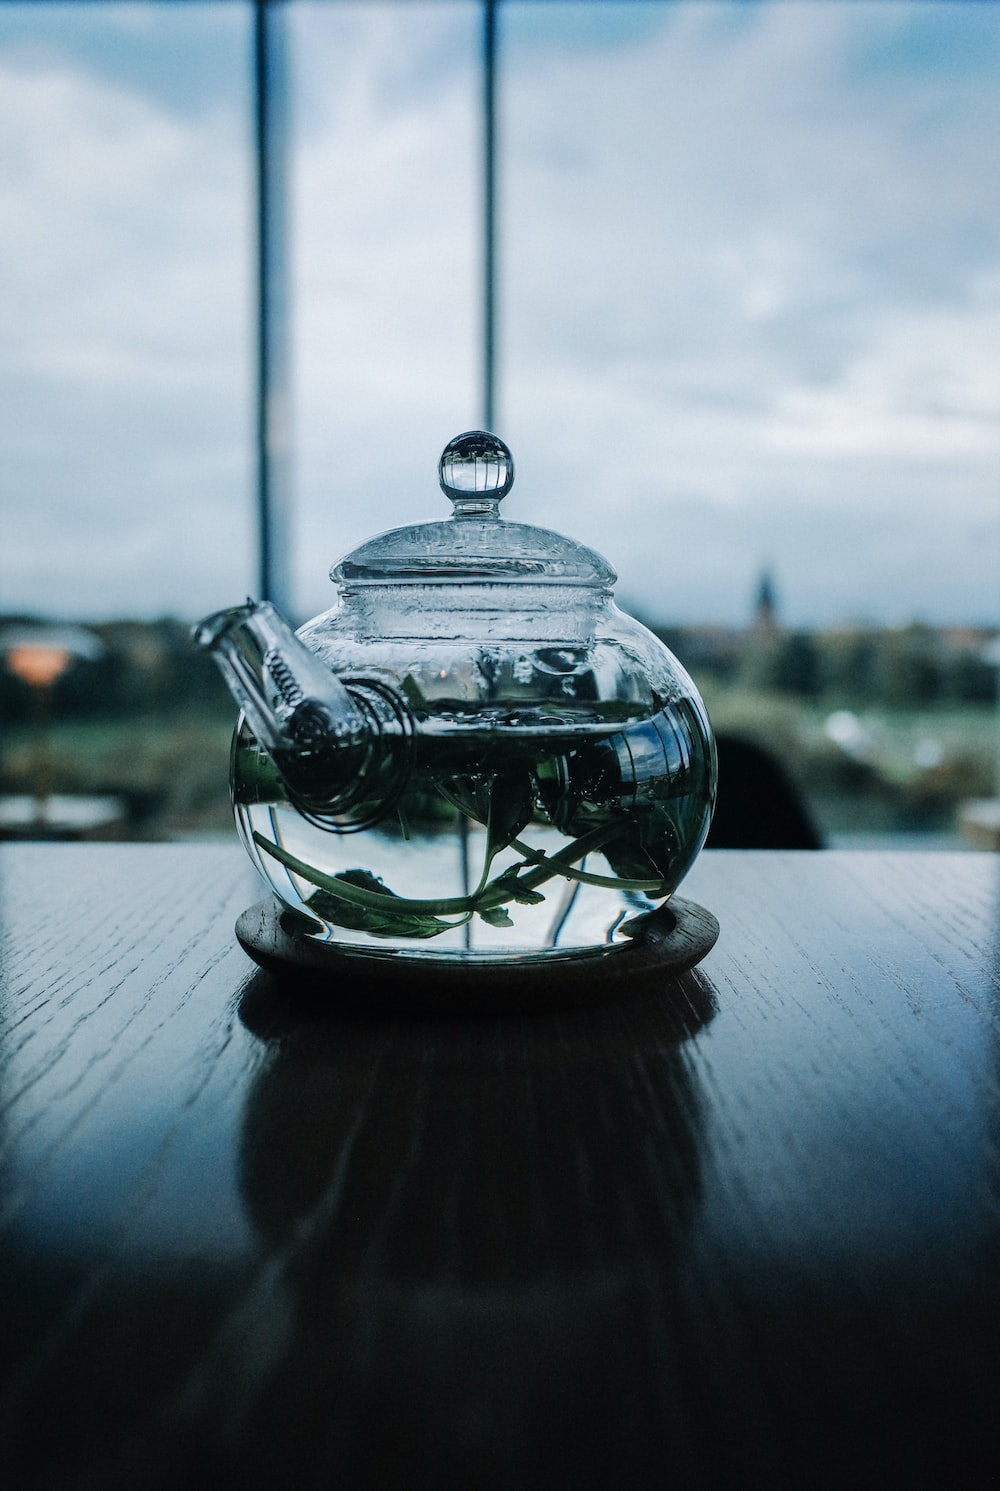 clear glass teapot on table